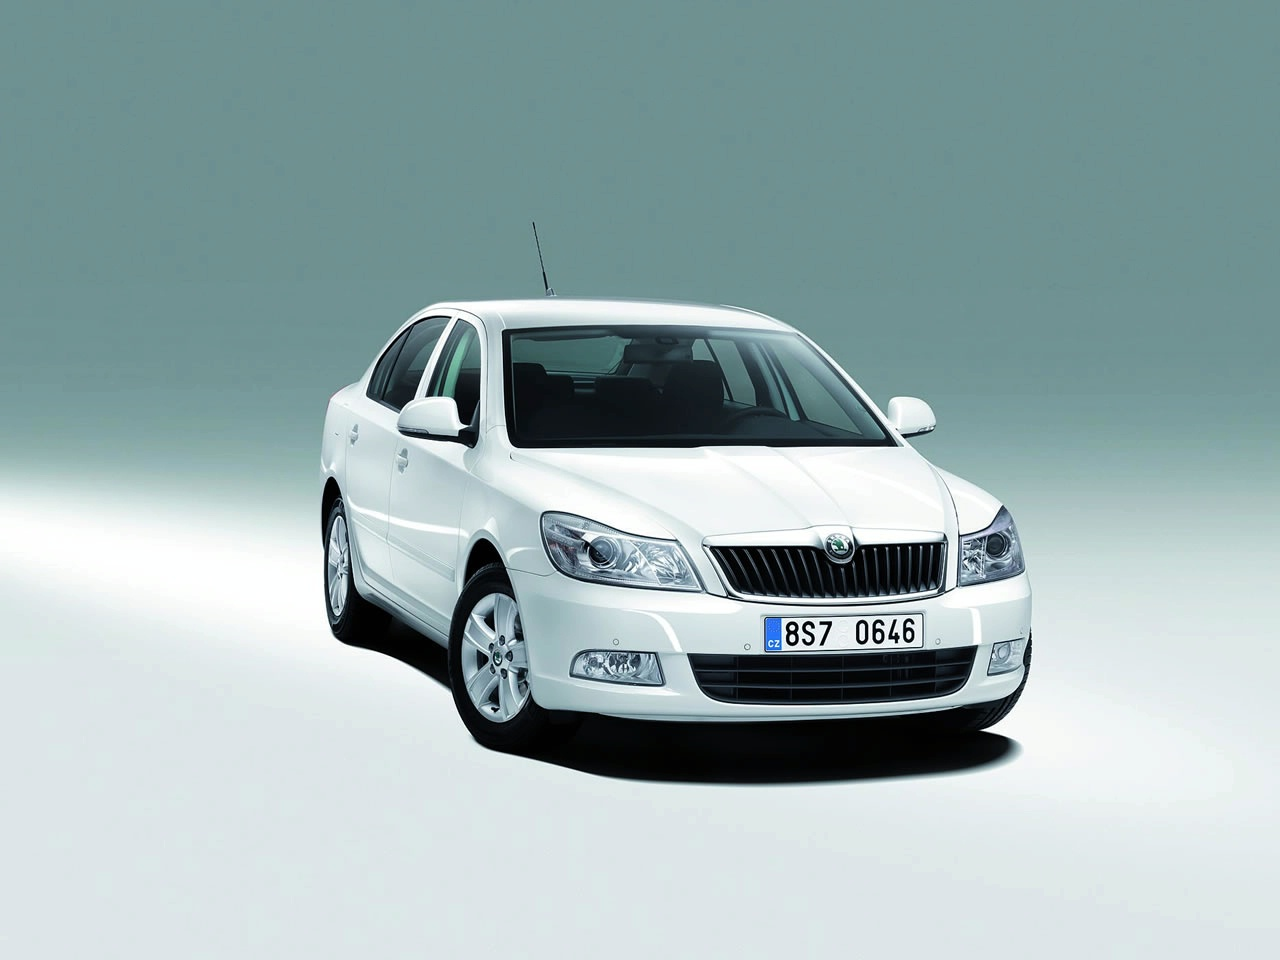 Skoda Octavia Greenline 3 Skoda Octavia Greenline Technical Details History Photos